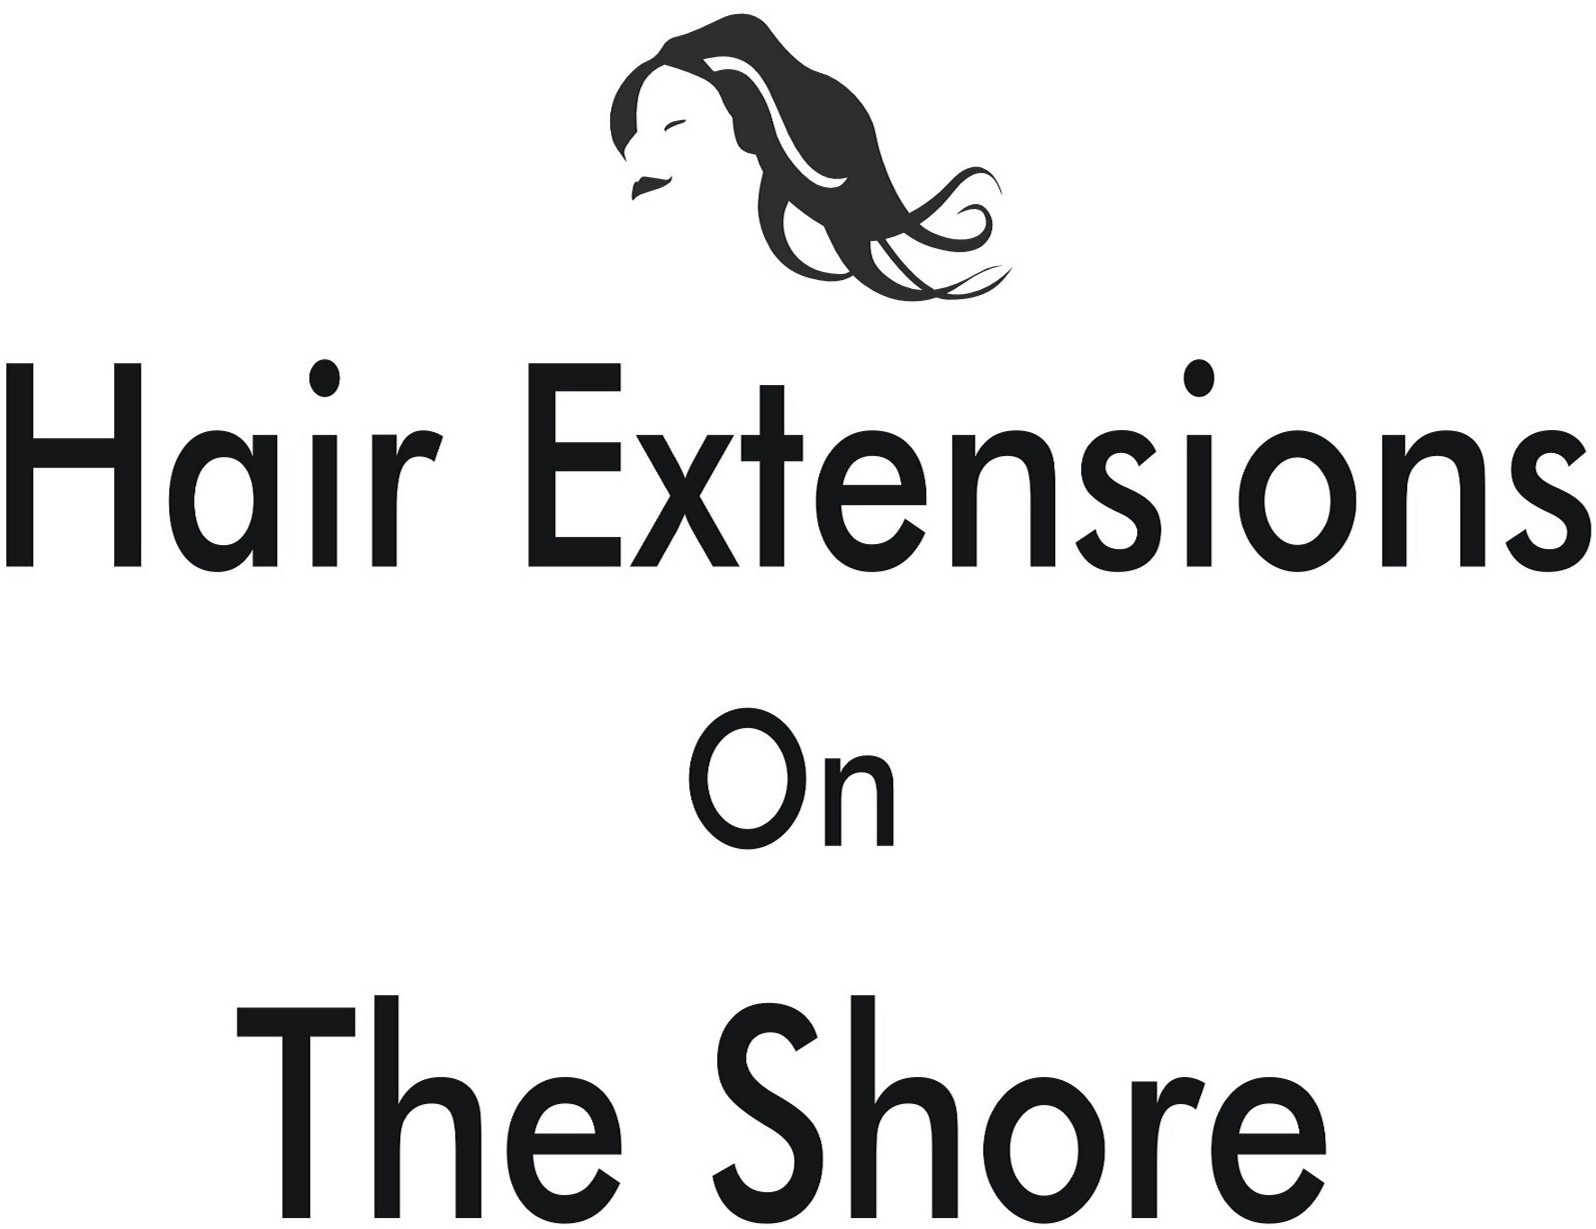 Hair Extensions On The Shore